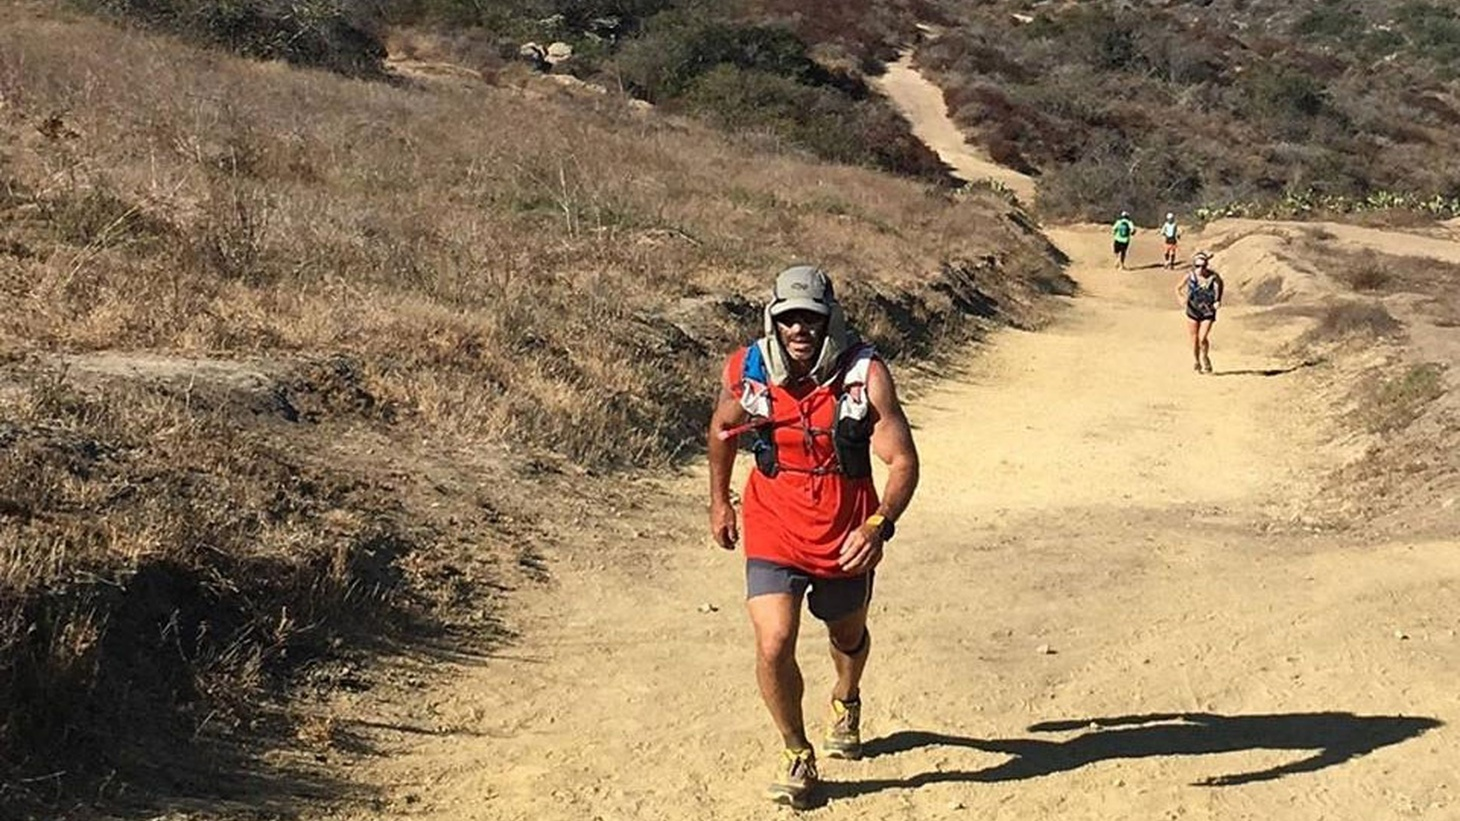 Chris Neiman is an actor by training. He feels he's got 10 percent control of his success as an actor, but in ultrarunning, he says he has 90 percent control – it's on him, his body and his mind. He runs a lot in the Santa Monica Mountains.